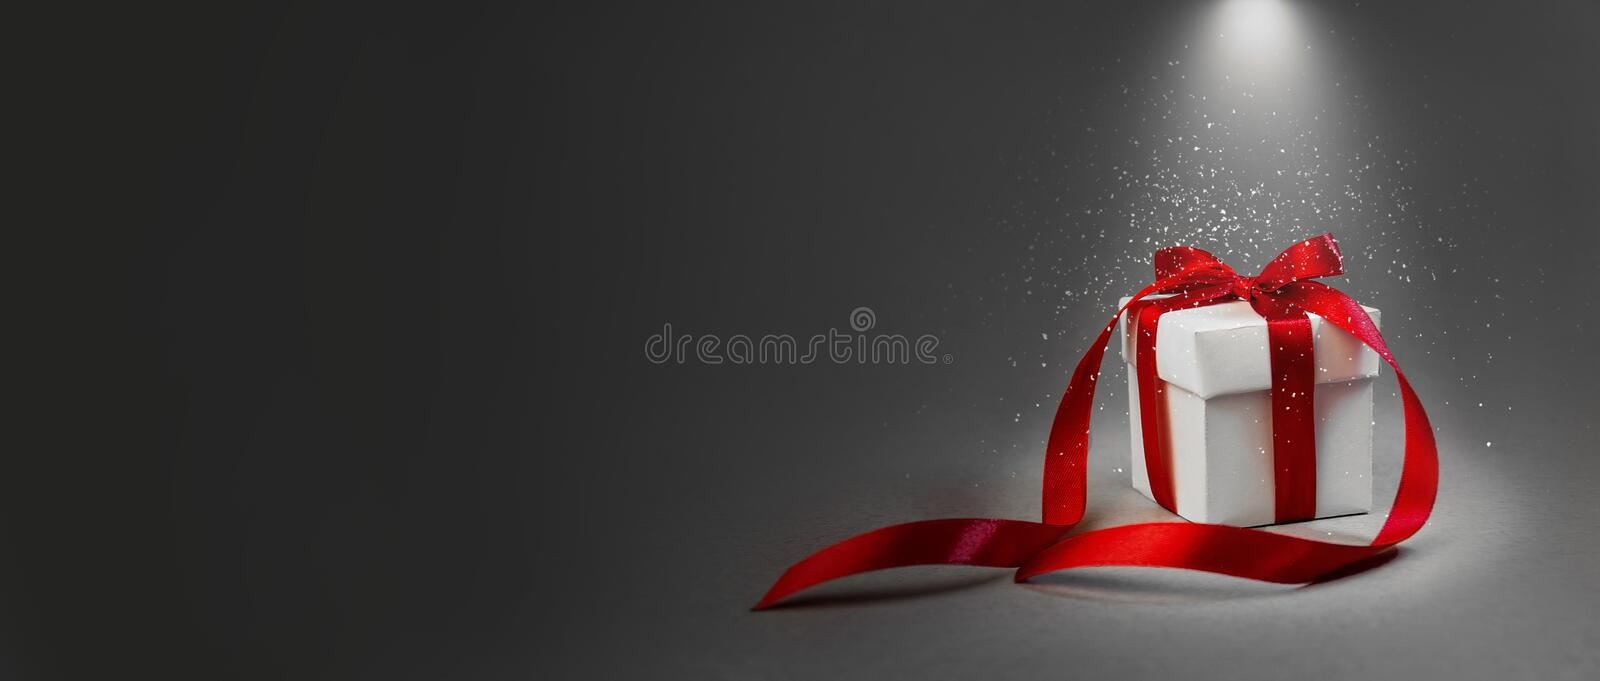 Christmas Gift White Box Red Ribbon Dark Grey Background Concept Night Illuminated Lantern New Year Holiday Composition Banner royalty free stock image